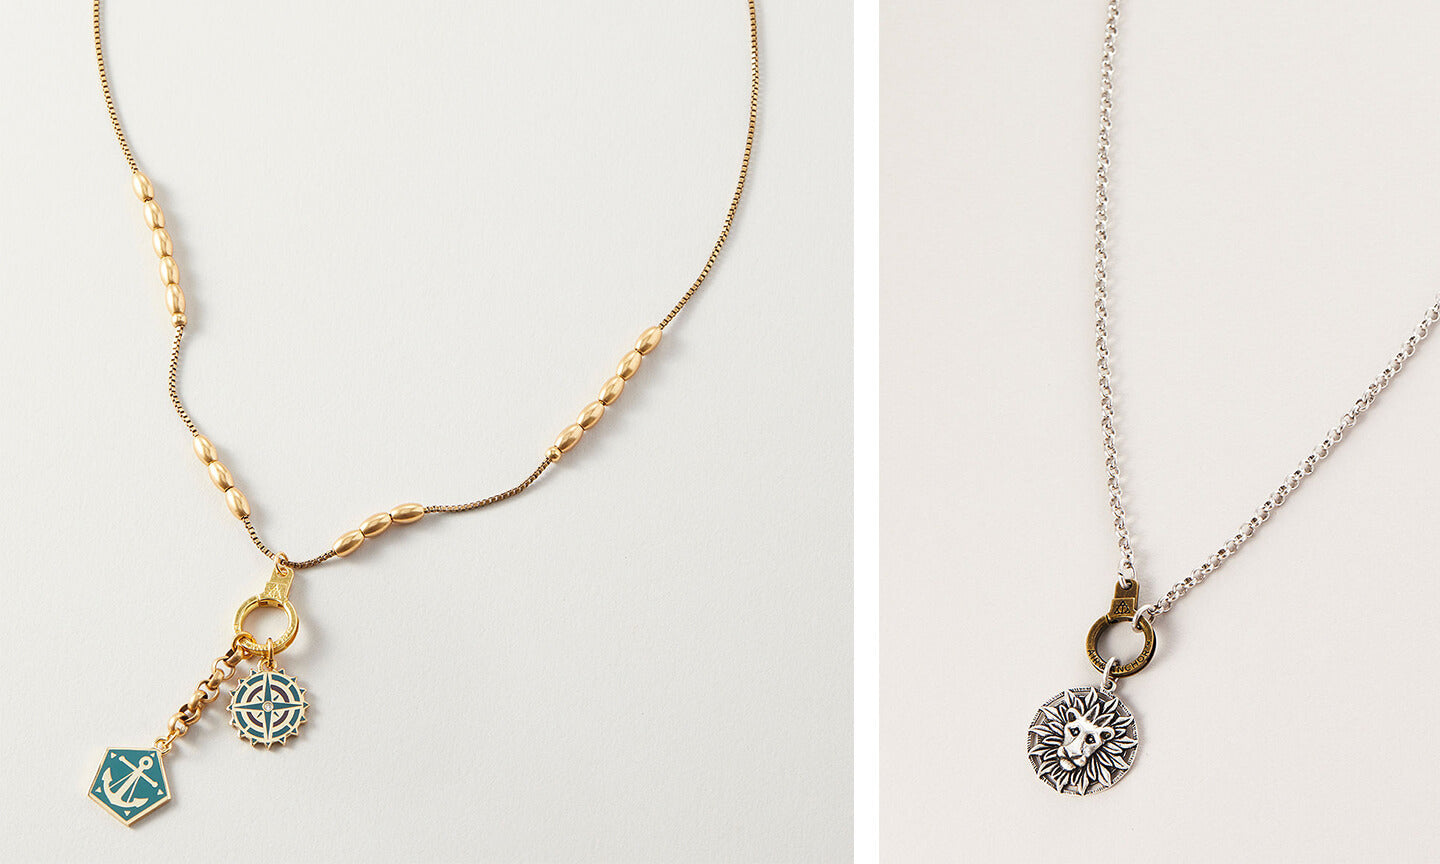 AIR AND ANCHOR Two Cuff Keeper Necklaces with Charms